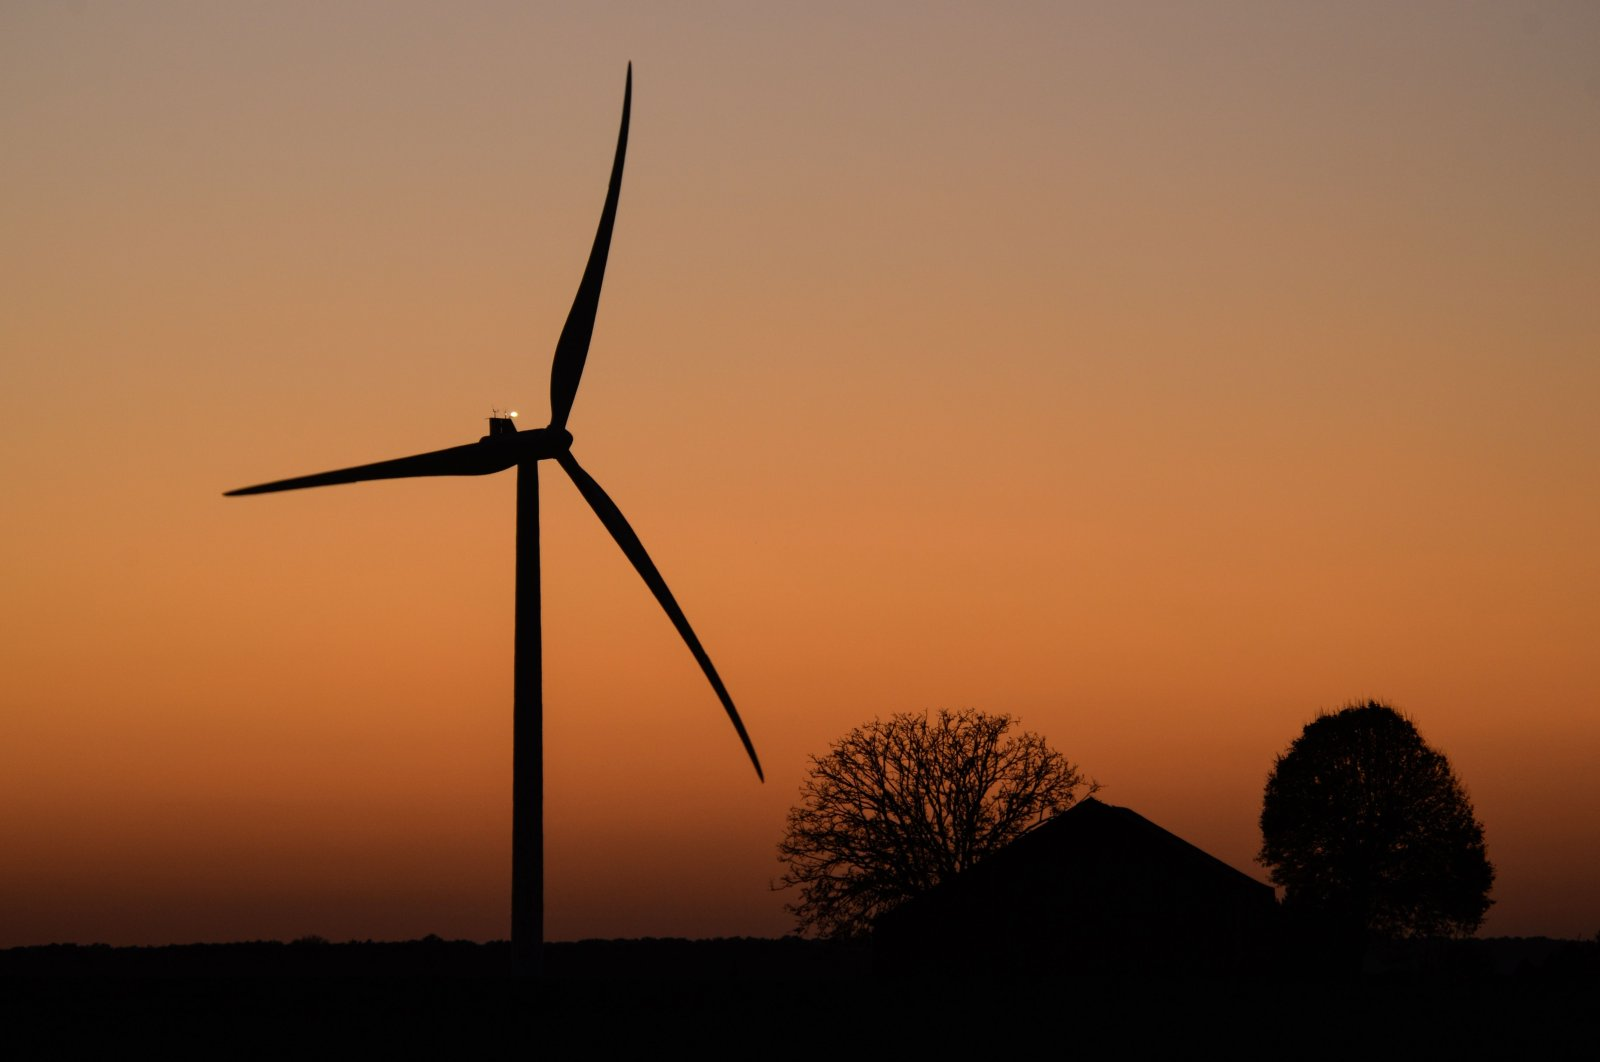 A wind turbine is seen near an outcropping of trees as the sun sets on the Route de Magny near Illiers-Combray, central France, Nov. 5, 2020. (AFP Photo)